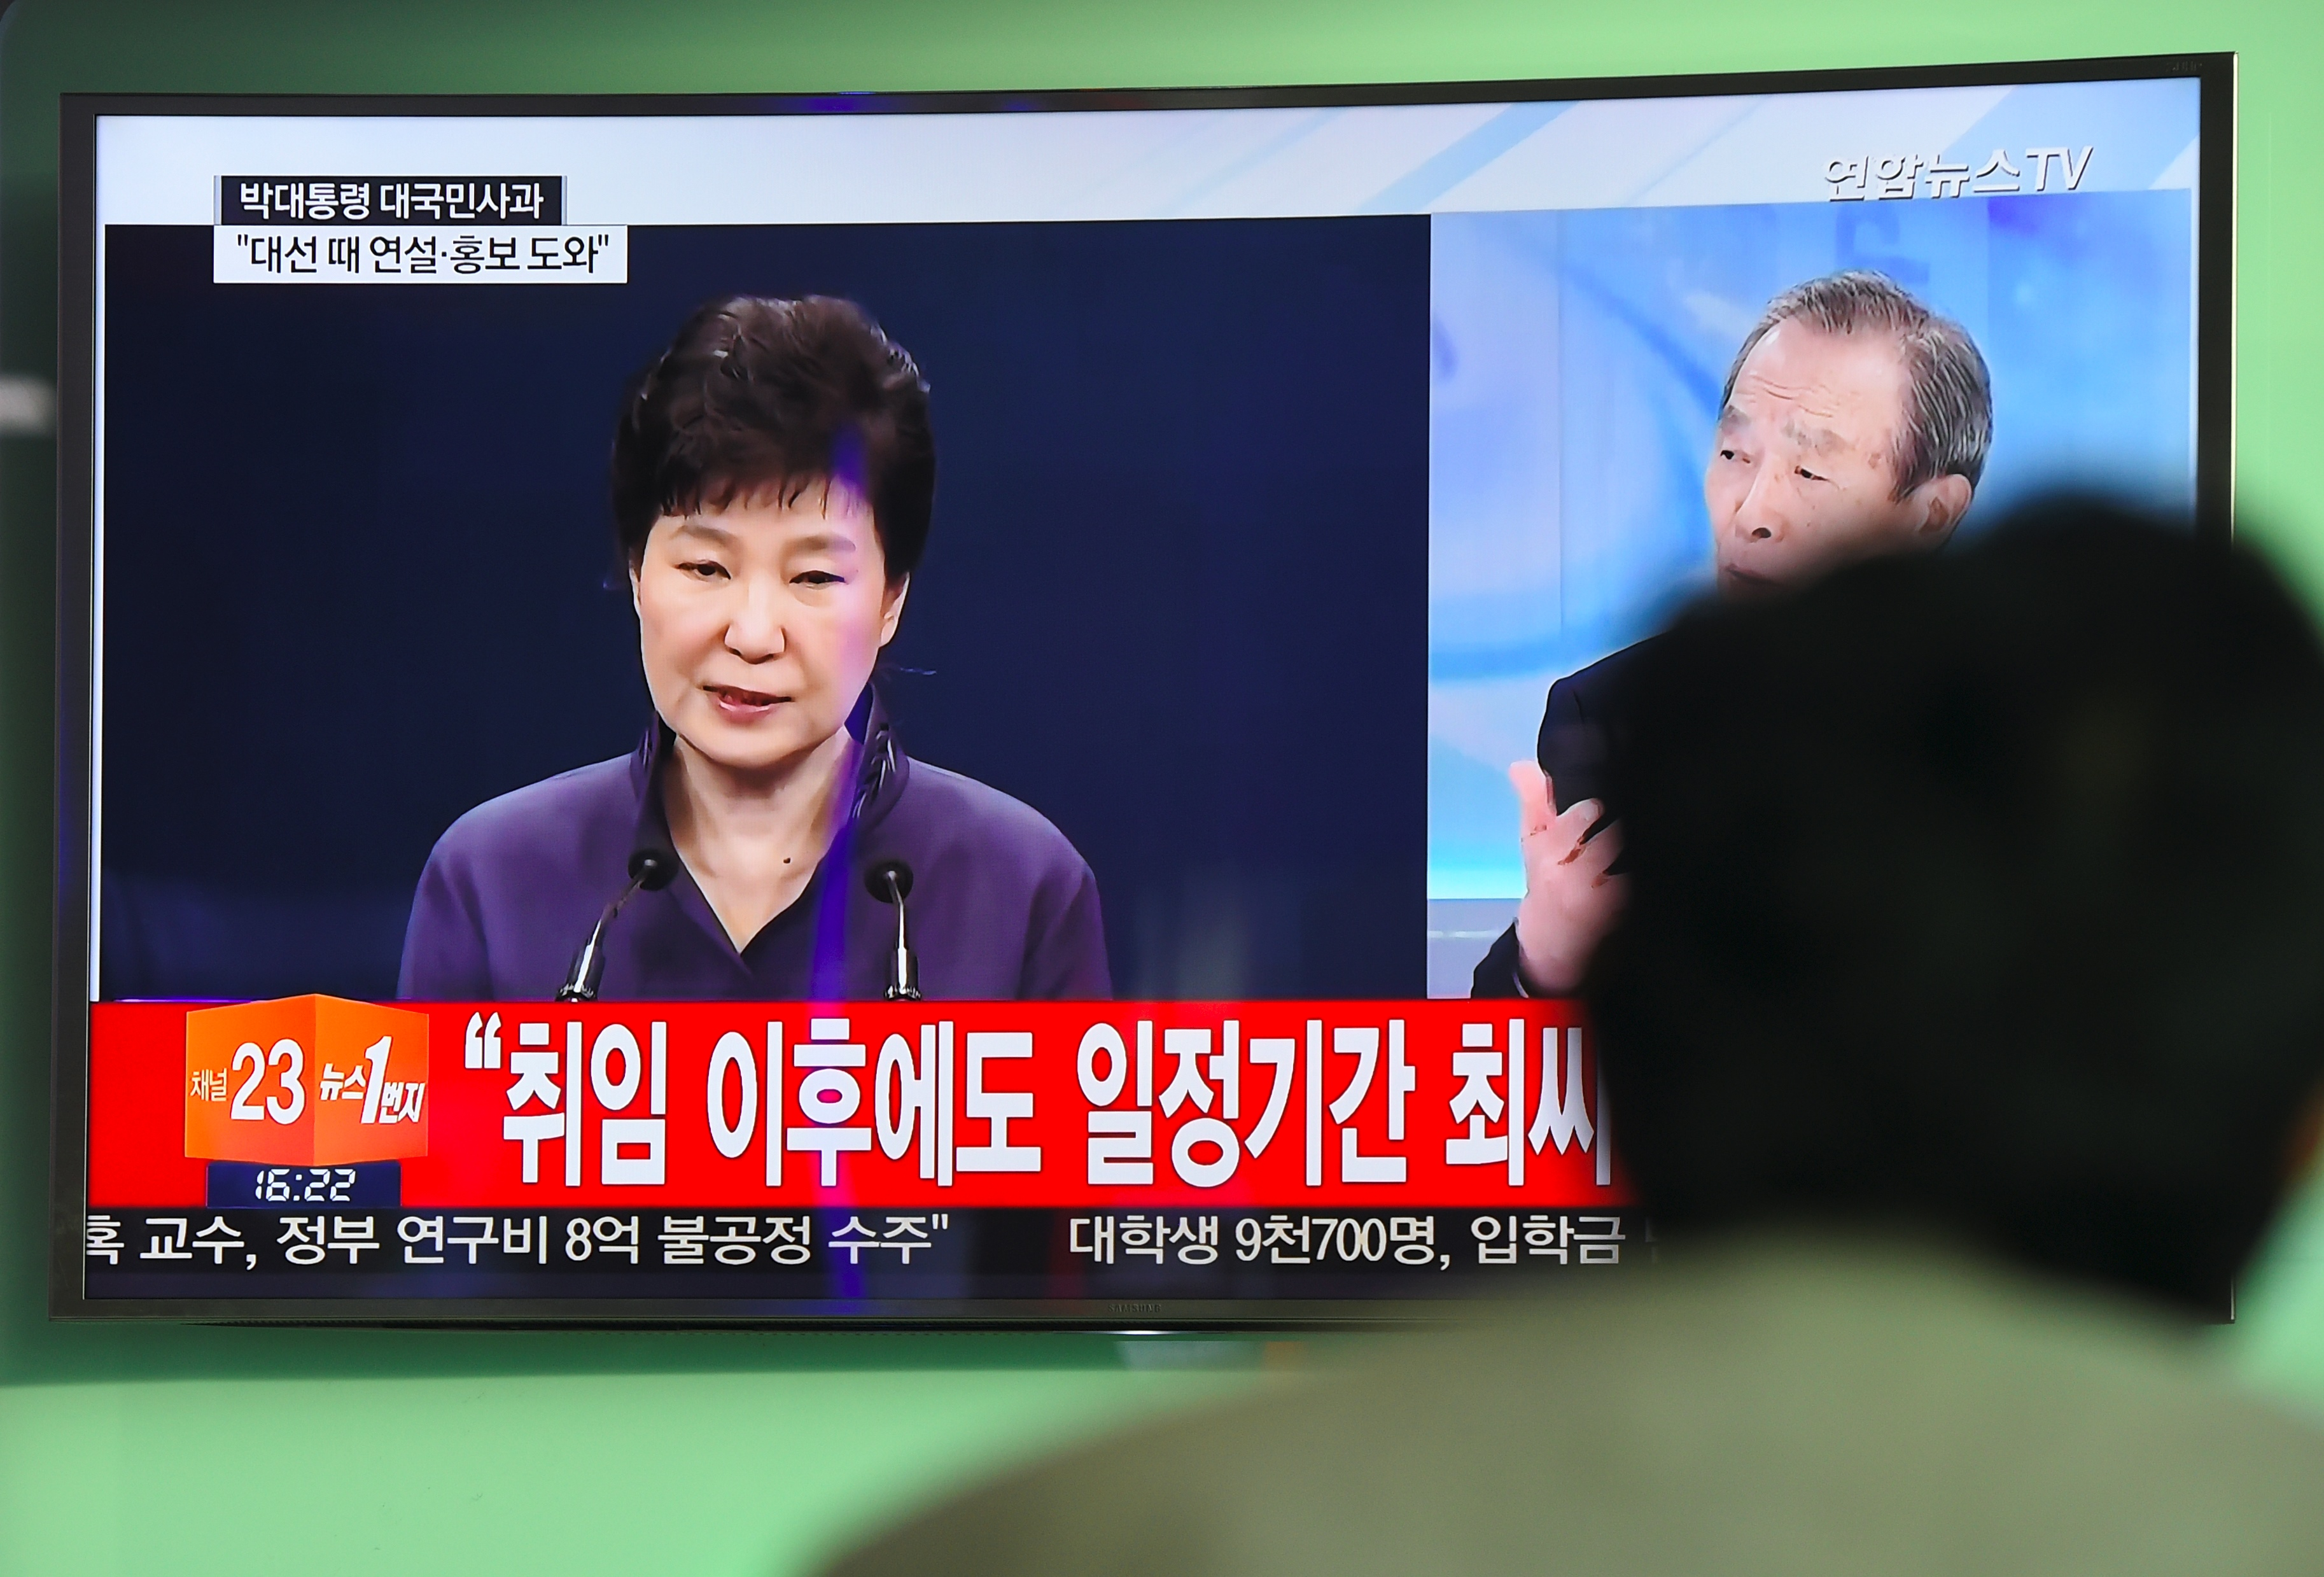 A man at a railway station in Seoul watches a television news report showing South Korean President Park Geun-hye making a public apology on Oct. 25, 2016